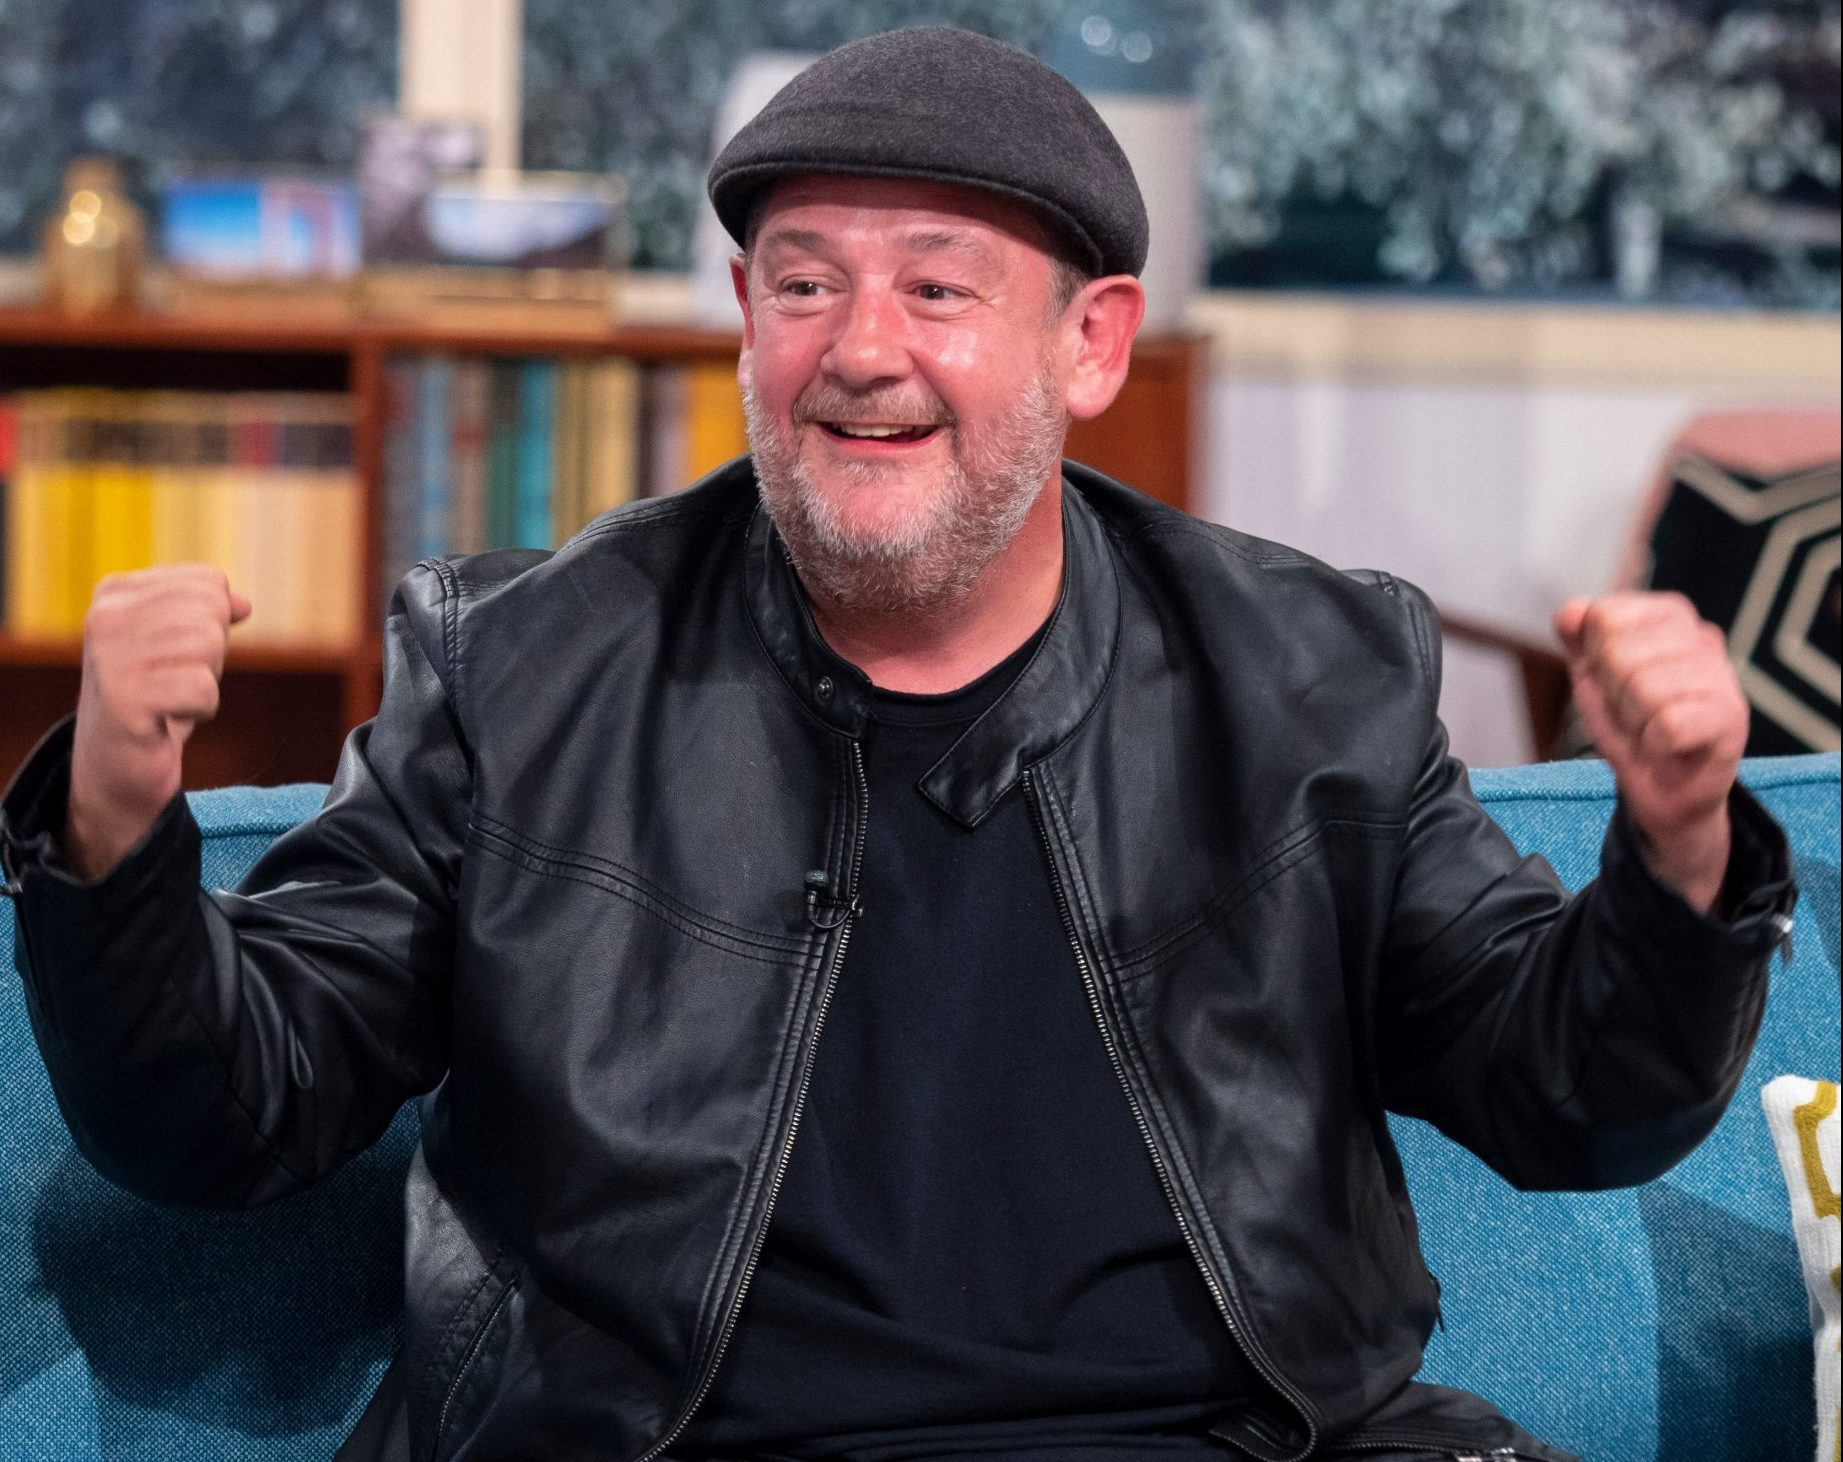 Johnny Vegas collapses on stage as 'drunken performance' sparks complaints with stand-up audience